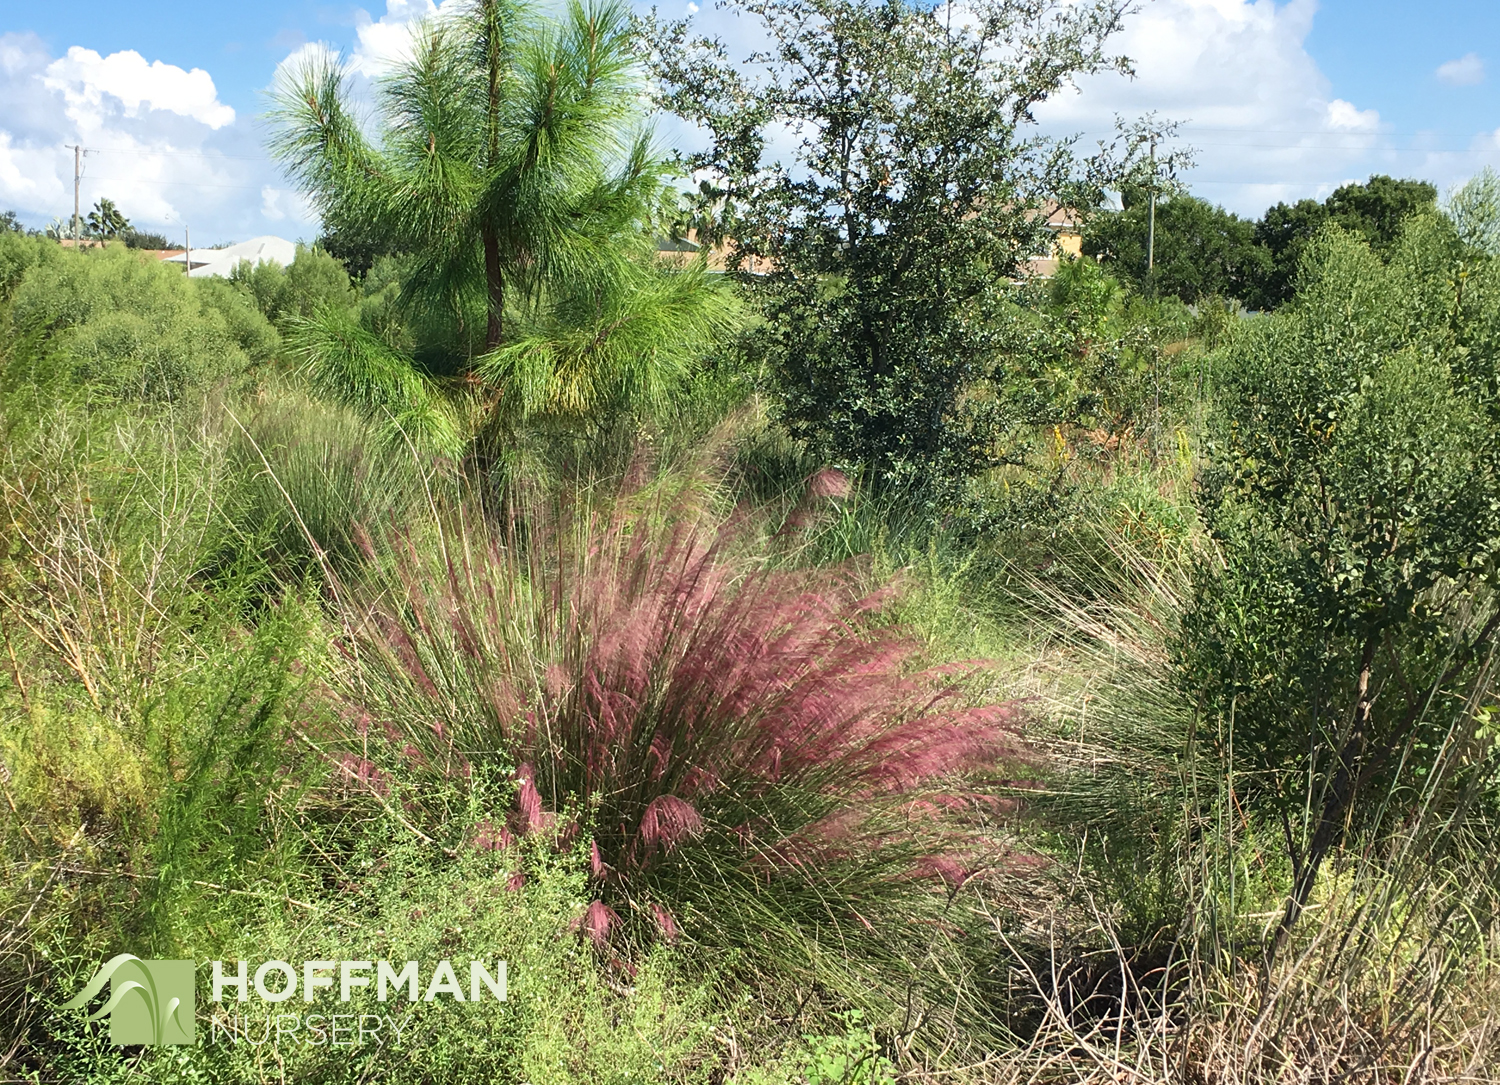 Pink Muhly (Muhlenbergia capillaris) was starting its fall show when we visited. The plumes were a rich, deep reddish-pink. Also called Gulf Muhly, this native grass was thriving on the site.